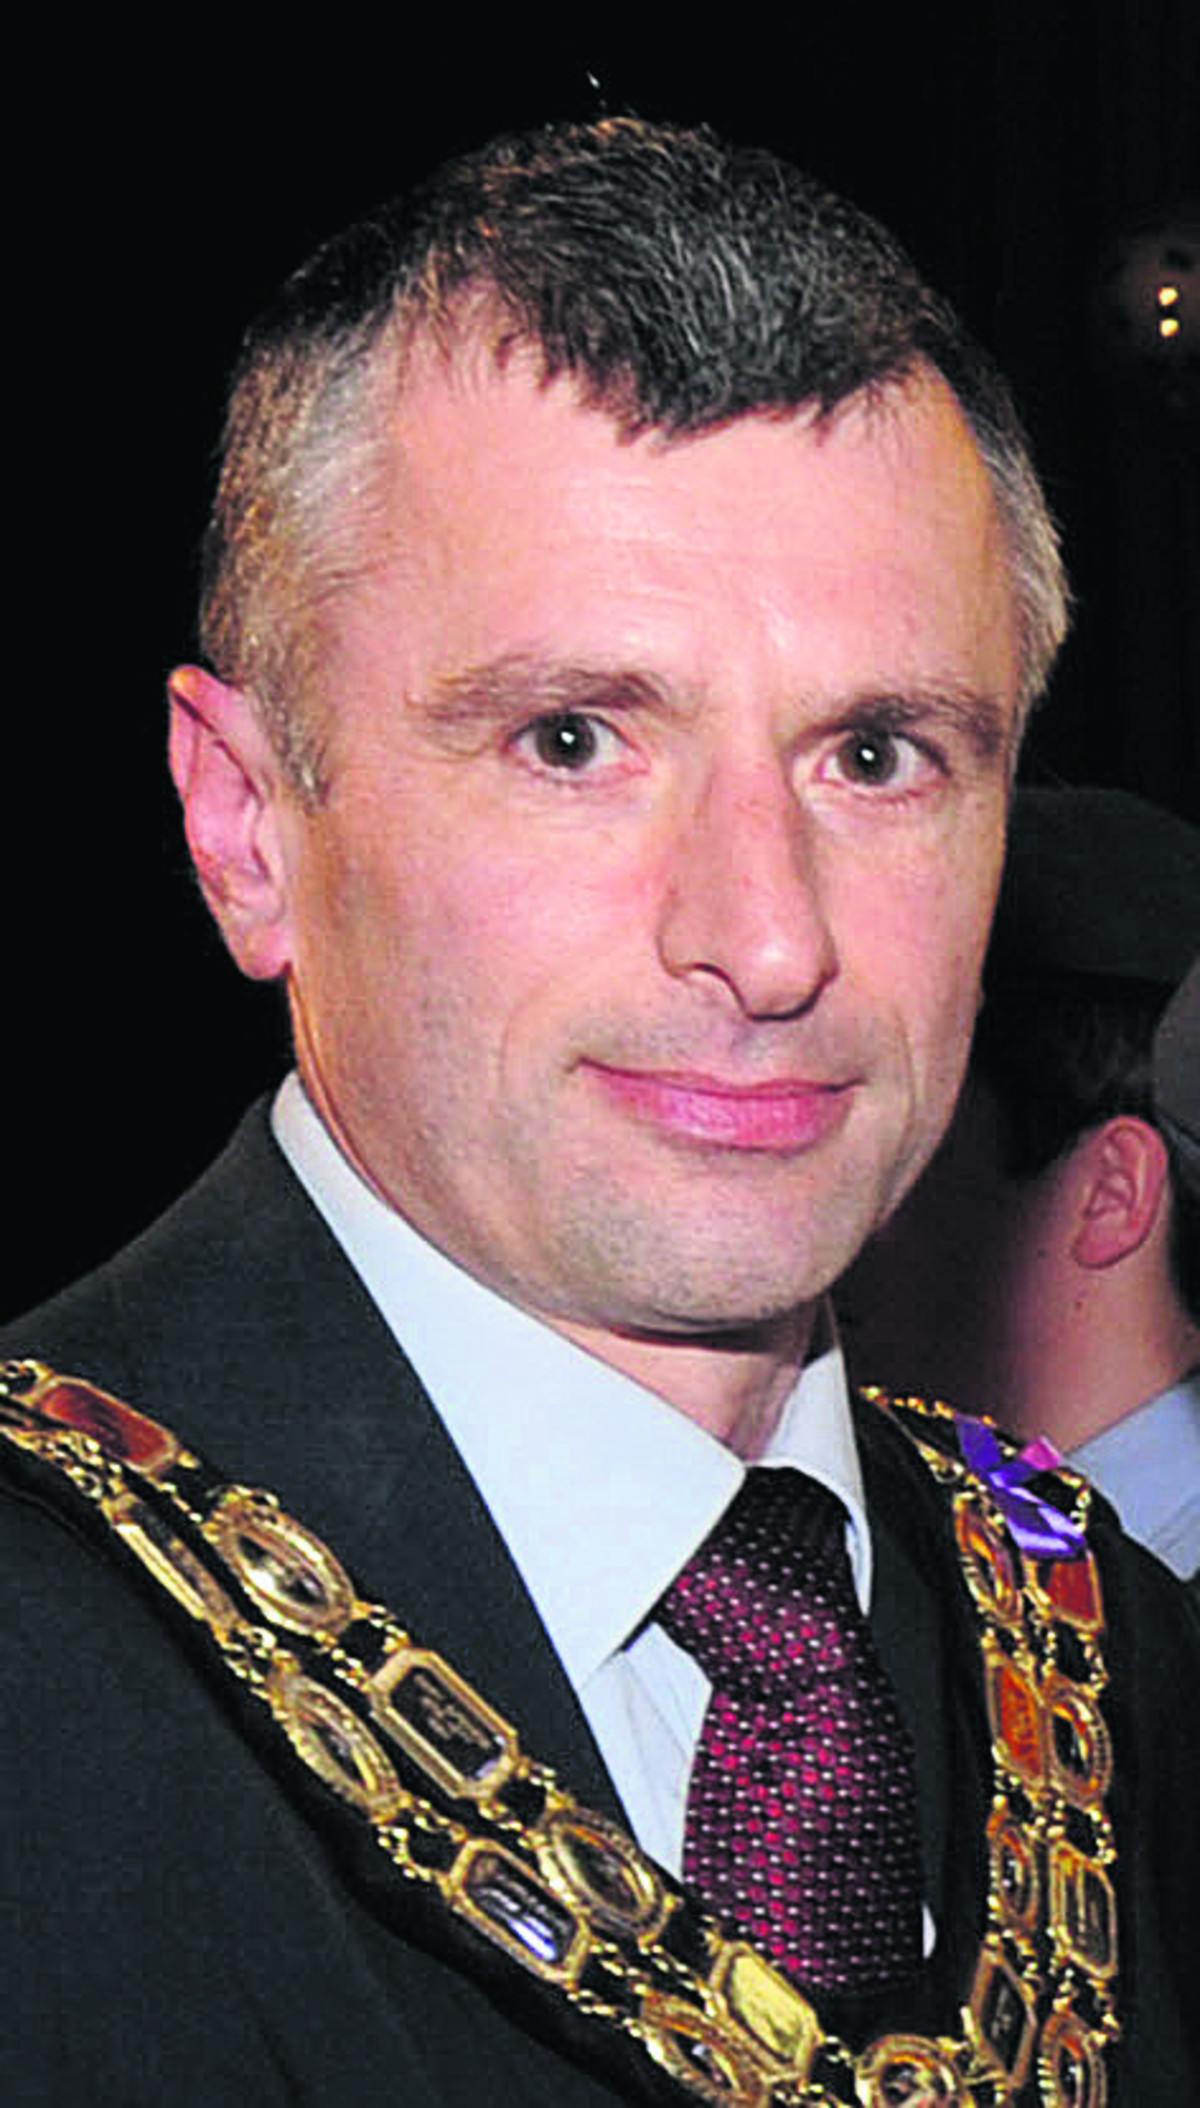 Mayor David Halik